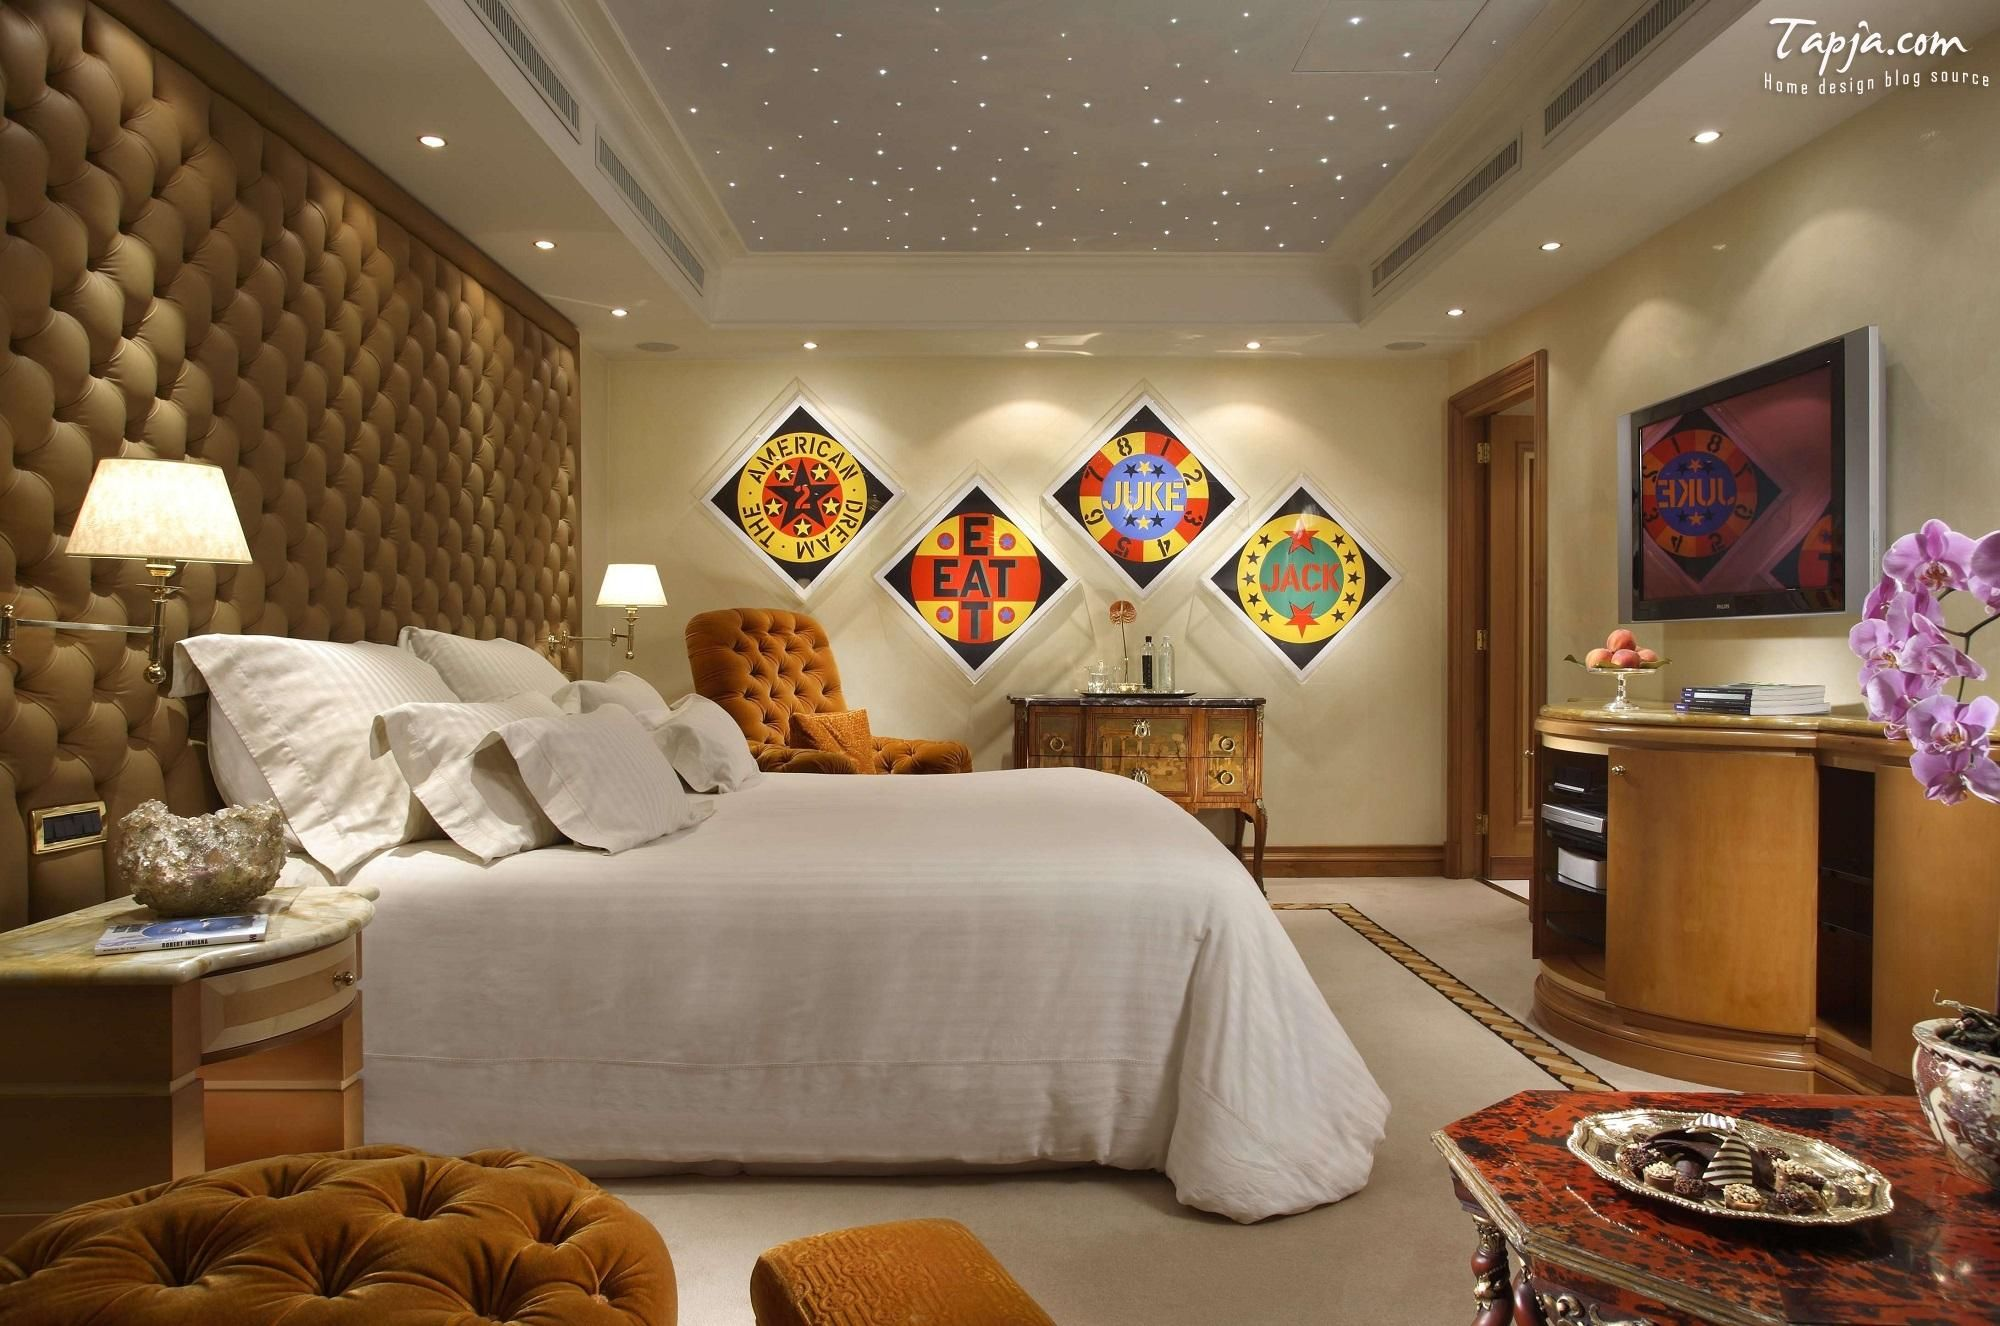 Fascinating Bedroom Decorating Woman Idea With Amazig Lighting Idea Idea In Beautiful Ceiling And Frame On The Wall Including Leather Art Wall Beside Bed Including Tv Setup On The Wall Above Vanity Bedroom decoration ideas for women Bedroom design http://seekayem.com